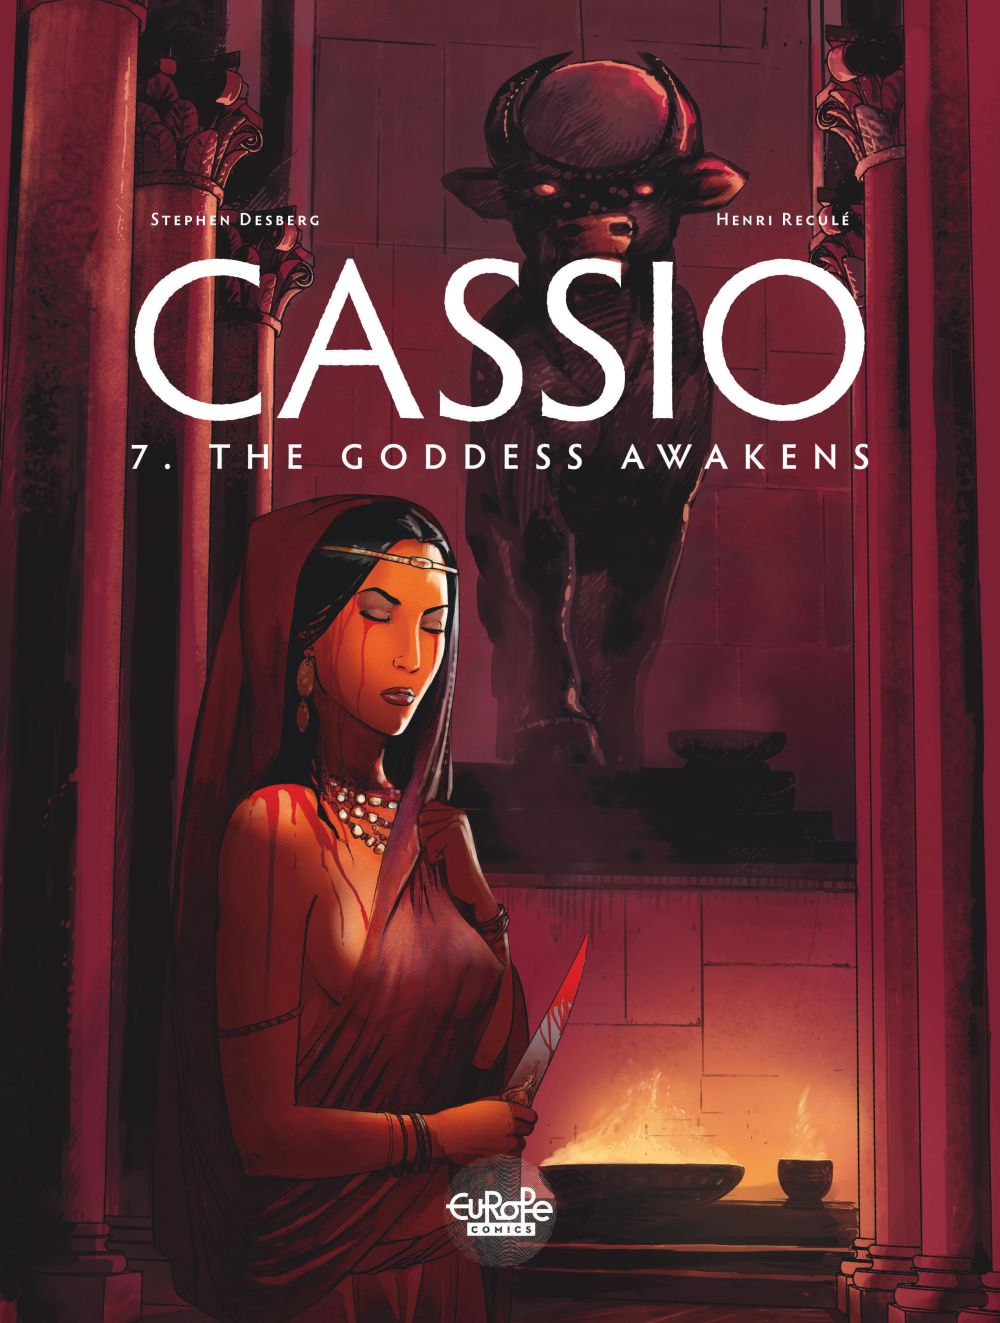 Cassio 7. The Goddess Awakens